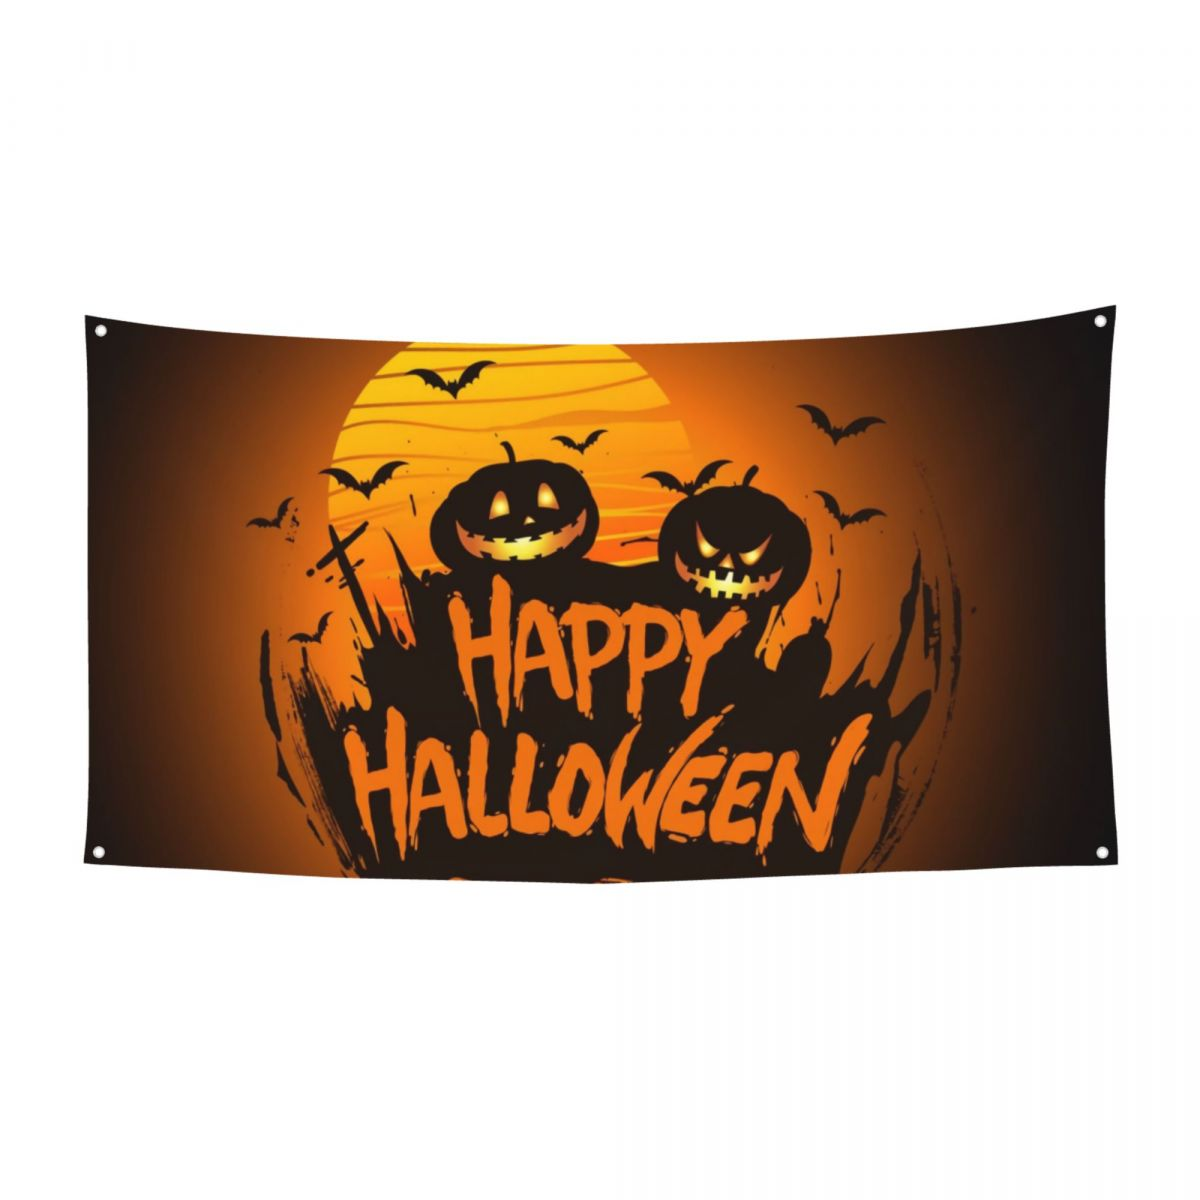 Halloween 180x90 cm banner with four metal buttonholes, suitable for indoor and outdoor holiday decorations